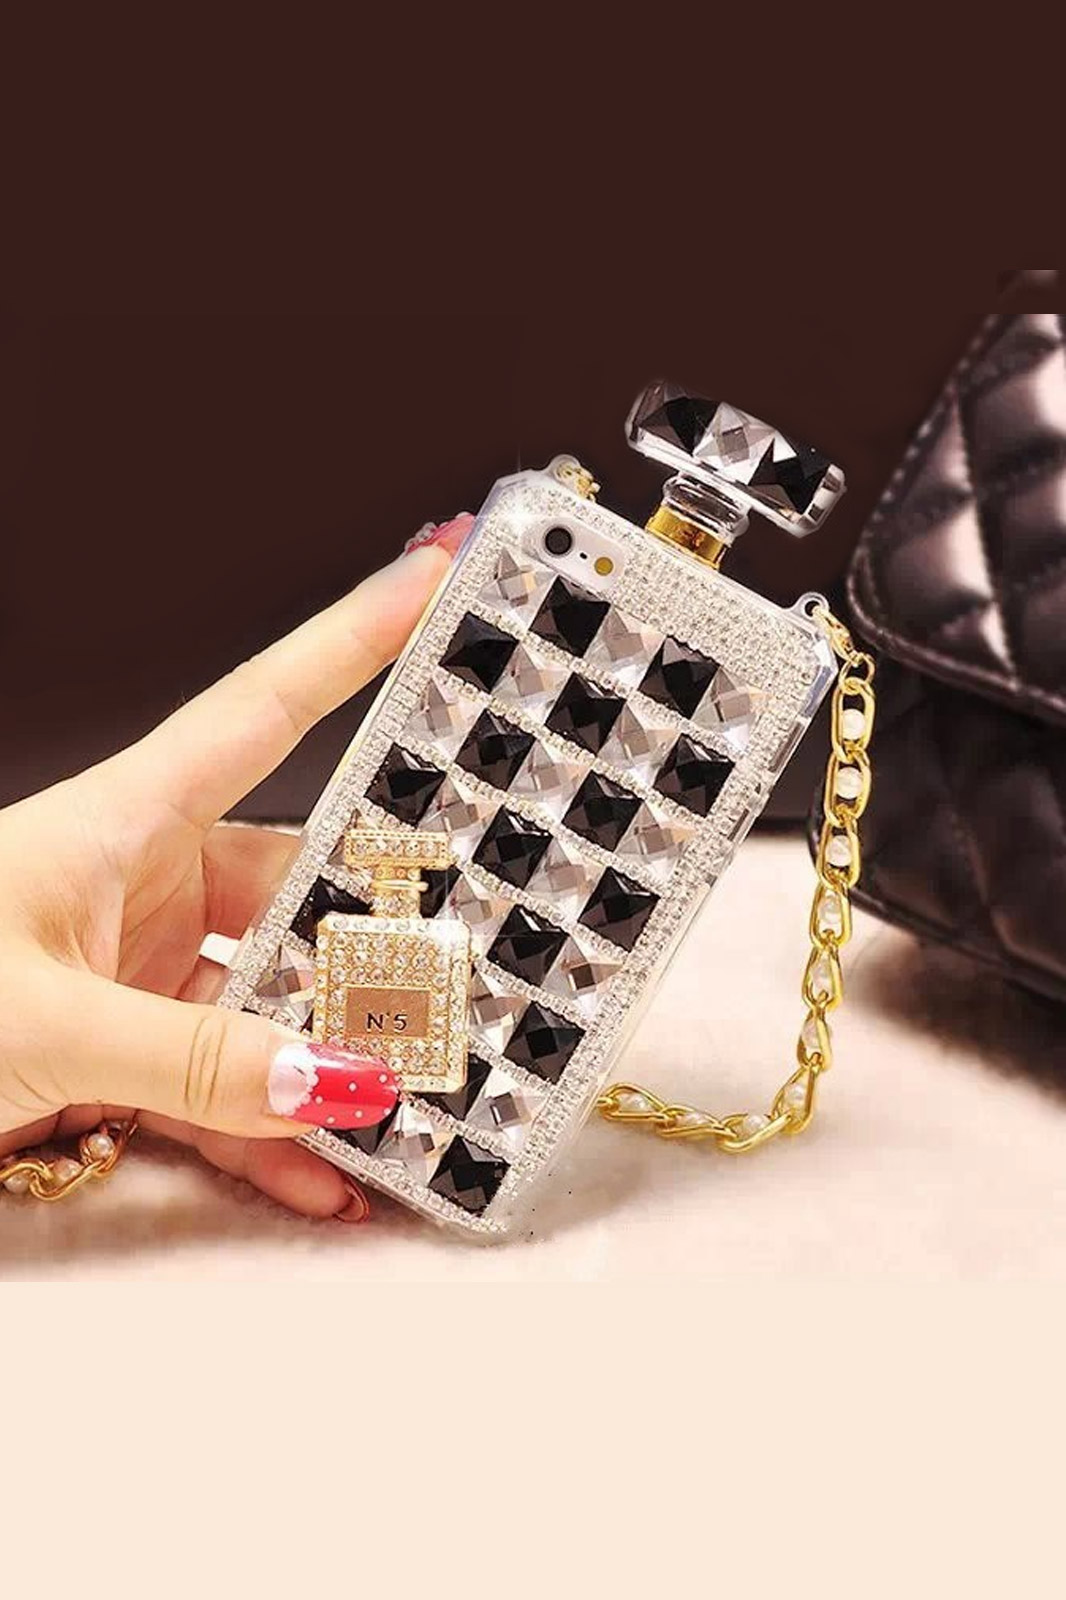 New luxury rhinestone perfume bottles phone case for iphone 6 iphone 6 plus case diamonds bling tpu soft phone cover with chain2